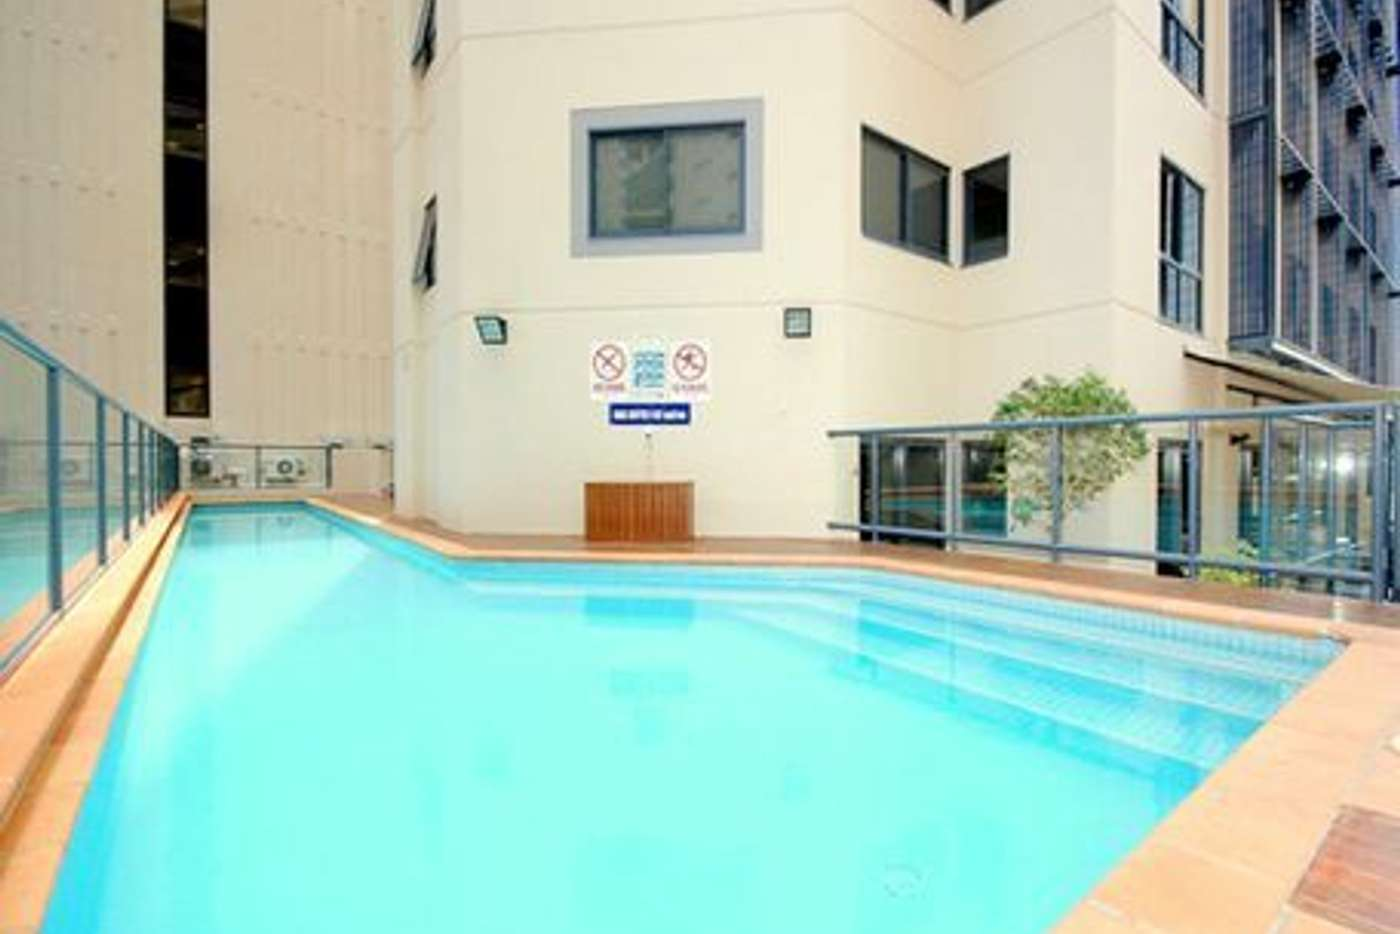 Main view of Homely apartment listing, 1207/108 Margaret Street, Brisbane City QLD 4000